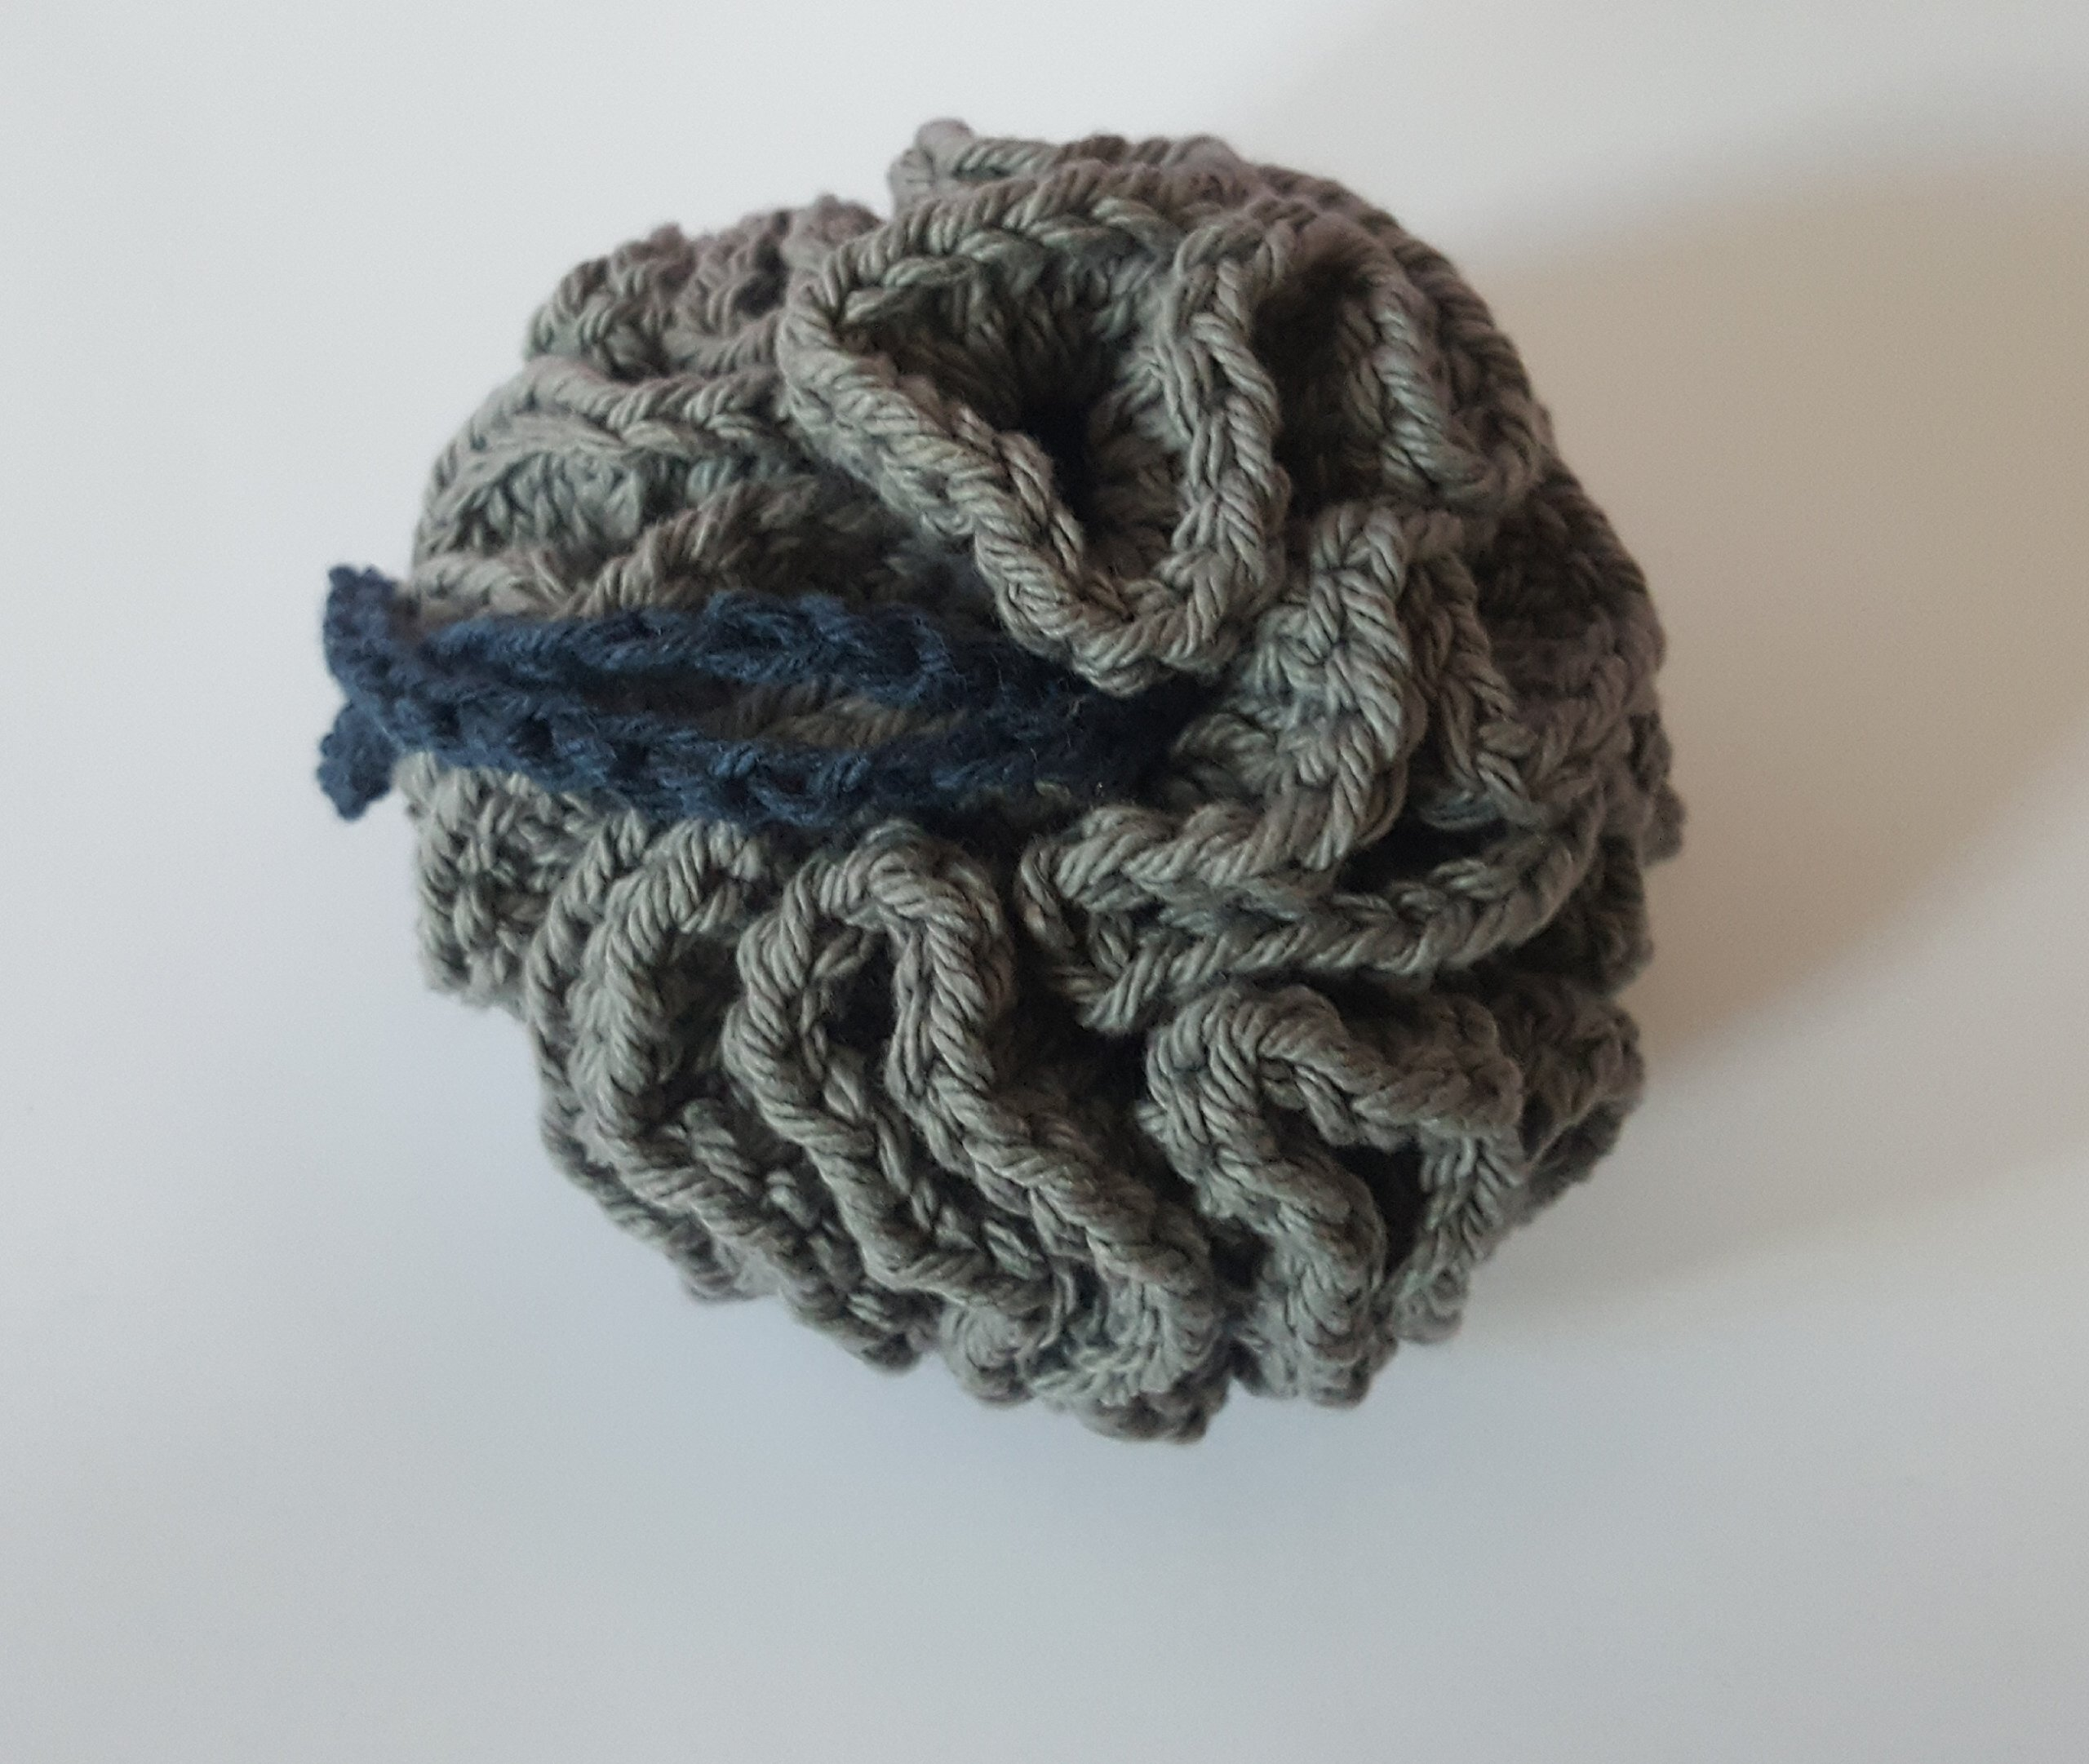 NY Yankee Inspired Bath Pouf by The Purl & Garter